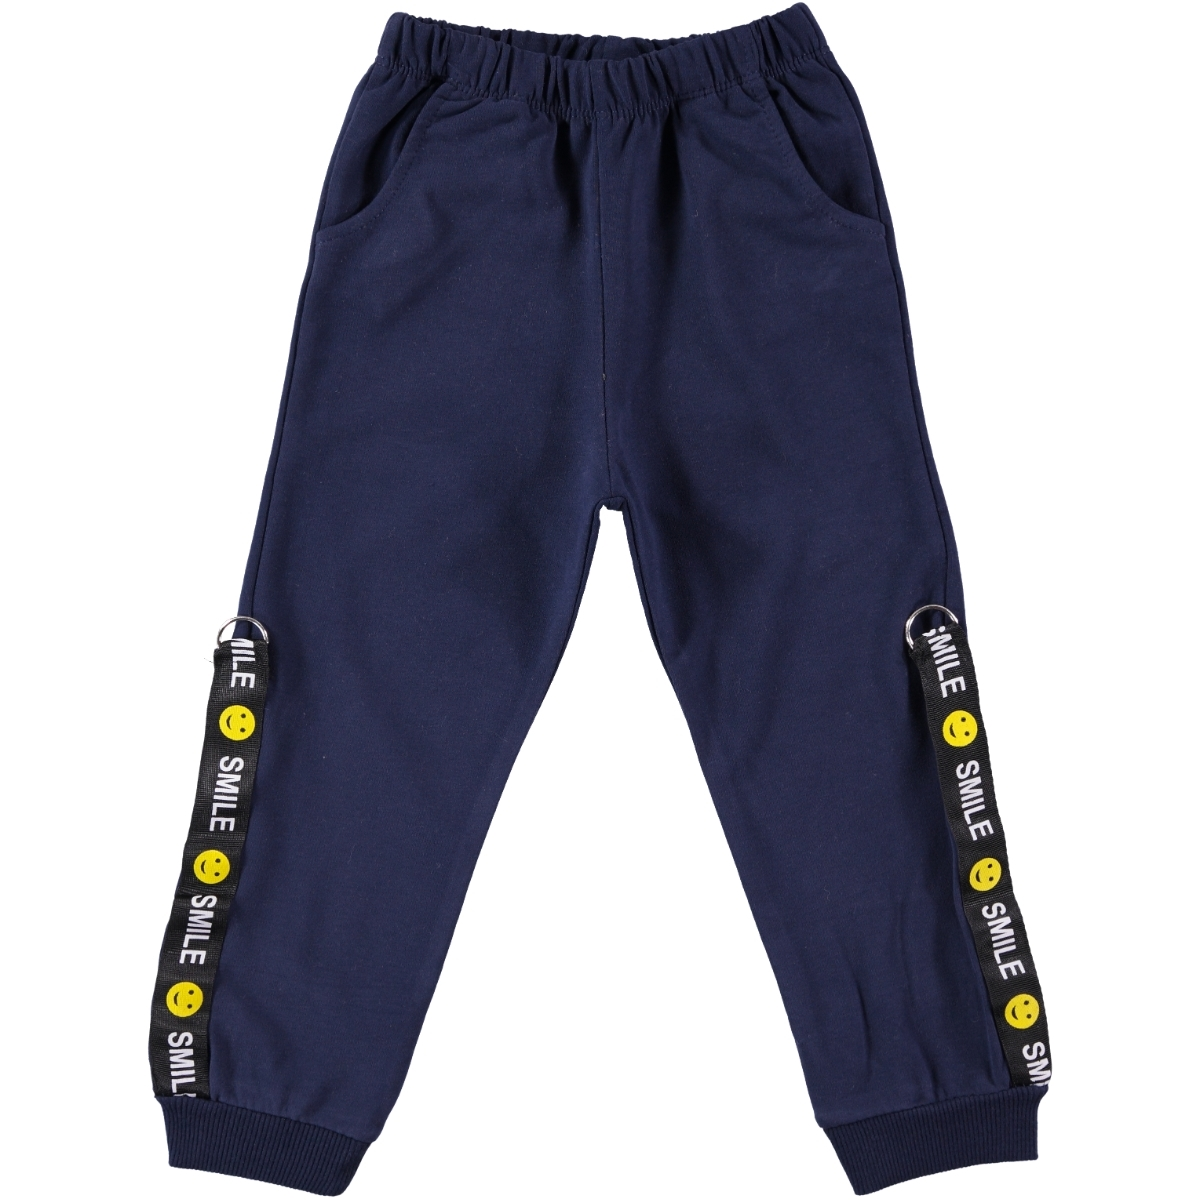 Miss Tuffy Navy Blue Sweatpants Girl, Ages 3-6